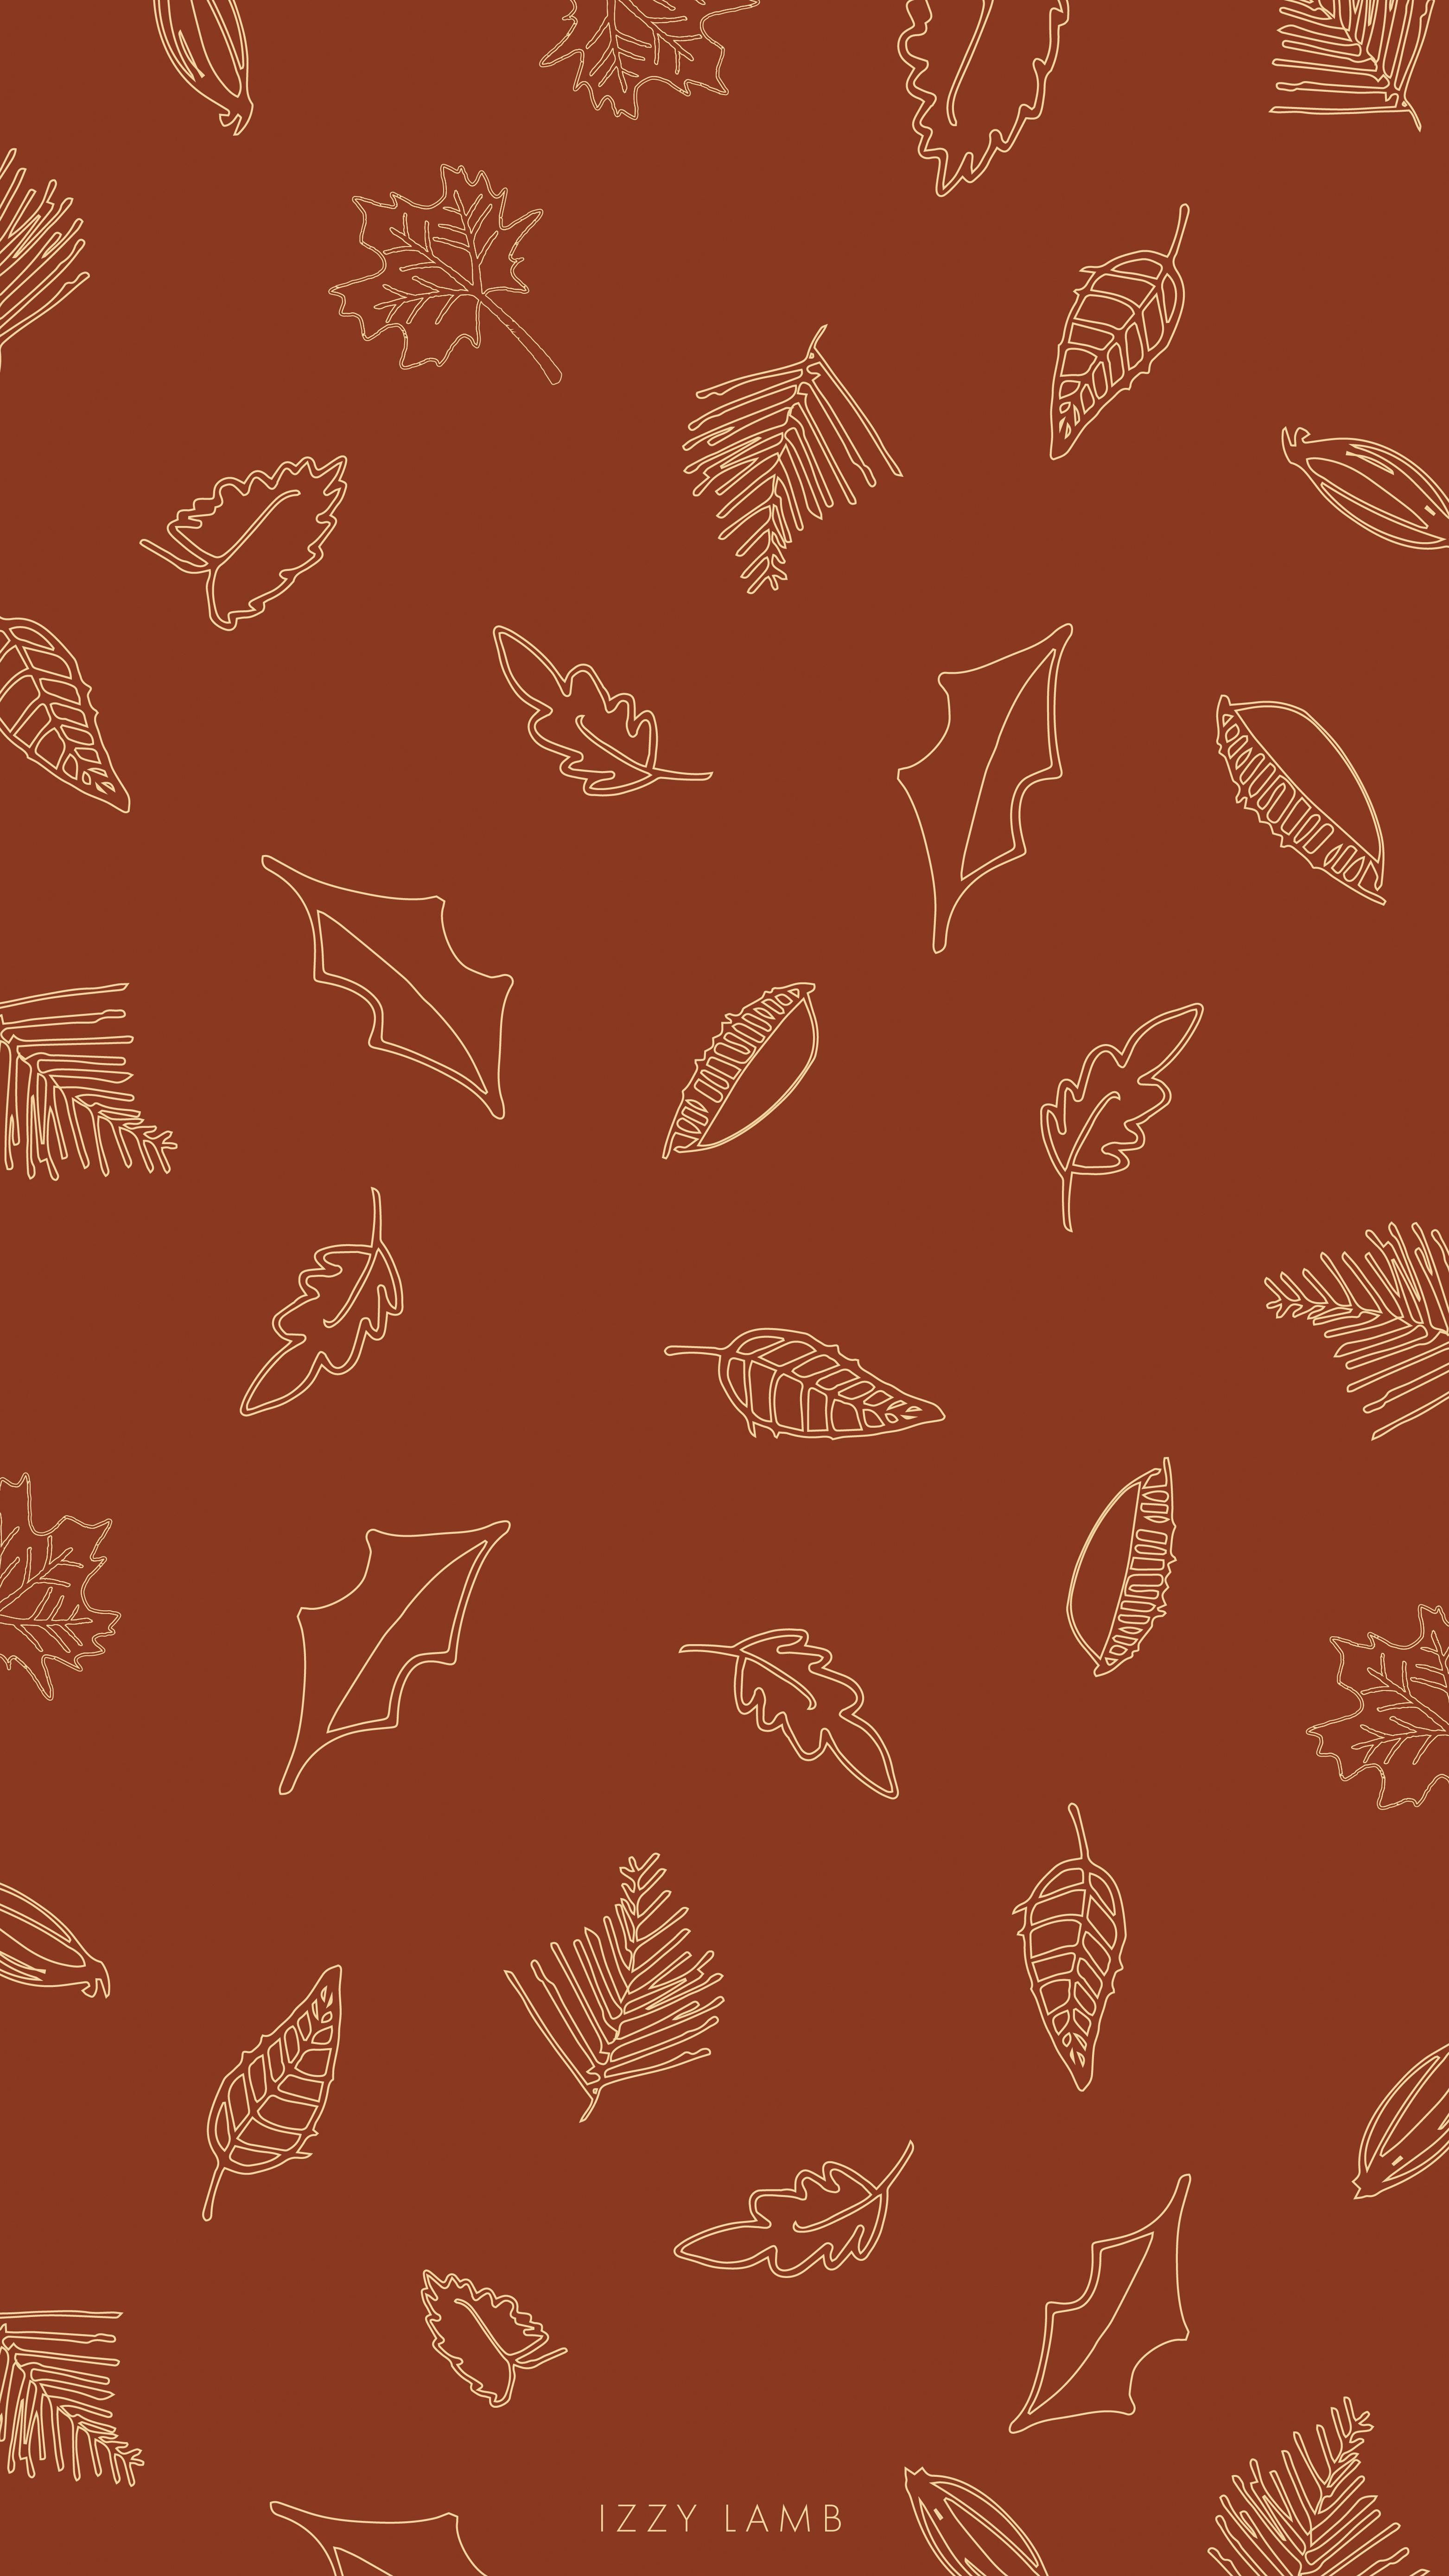 Leaves Wallpaper October Fall Autumn Iphone Wallpaper Phonewallpaper Izzylamb Iphonew Iphone Wallpaper Fall Autumn Leaves Wallpaper Cute Fall Wallpaper